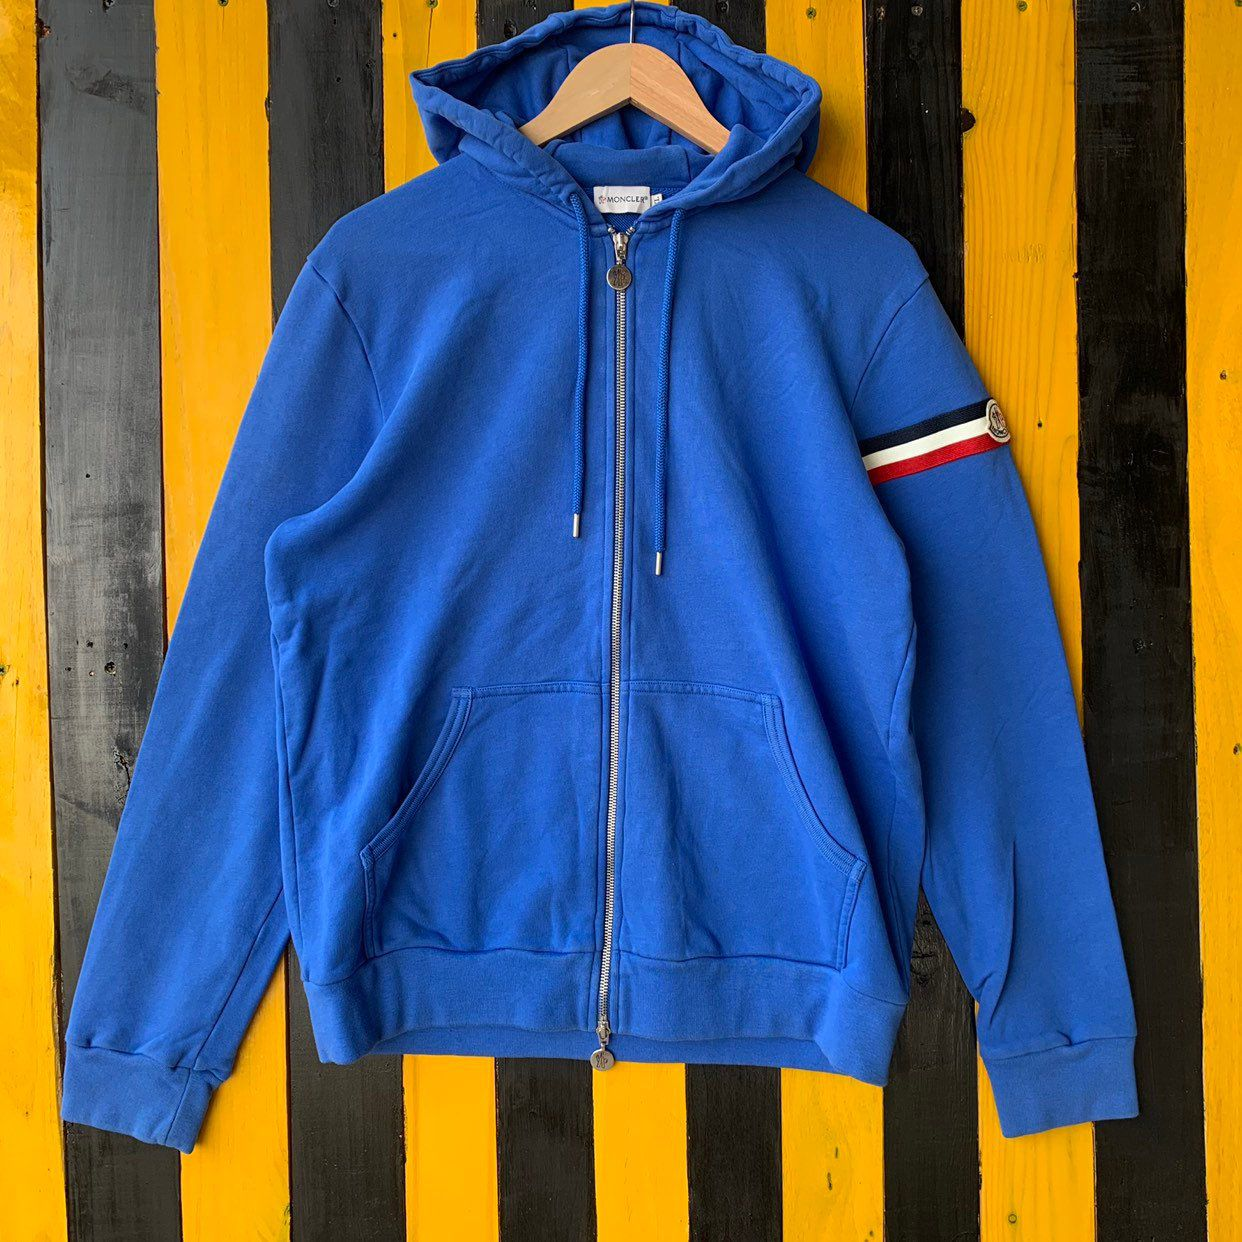 Excited To Share The Latest Addition To My Etsy Shop Vintage Moncler Full Zipper Hoodie Jumper Pullover Blue C Full Zipper Hoodie Hoodie Jumper Zipper Hoodie